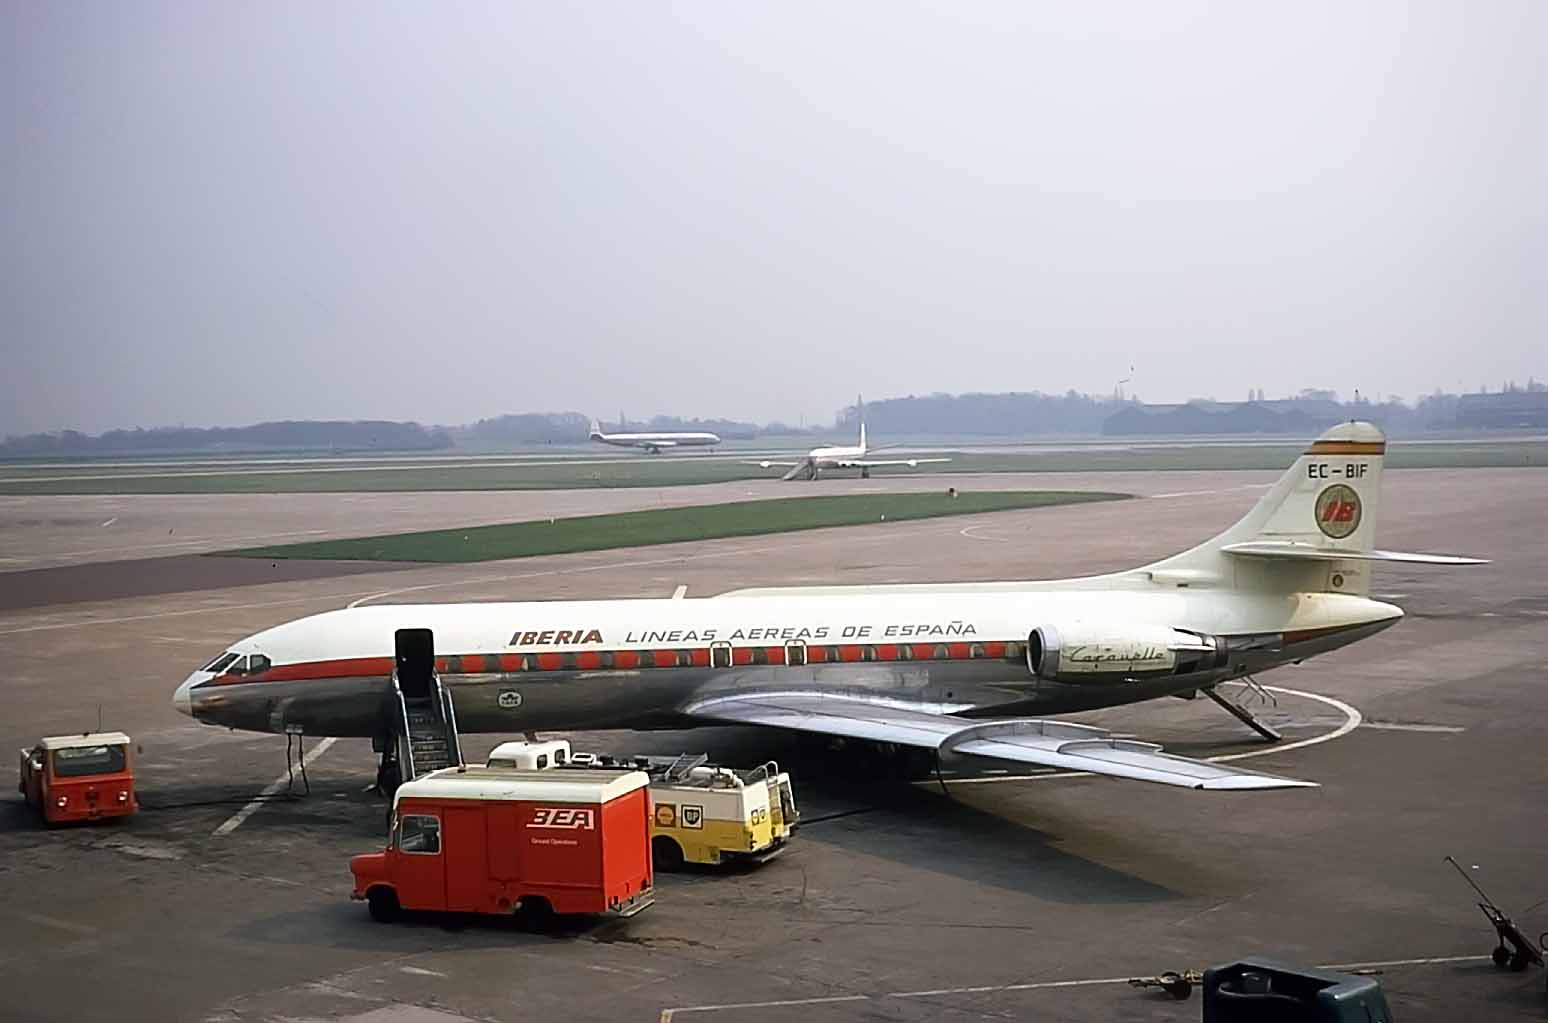 Comets and Caravelles at Manchester..what more could you ask for? This photo from Bob Thorpe captures a superb period representing airliners with power and style - April 1971…. I remember it well.